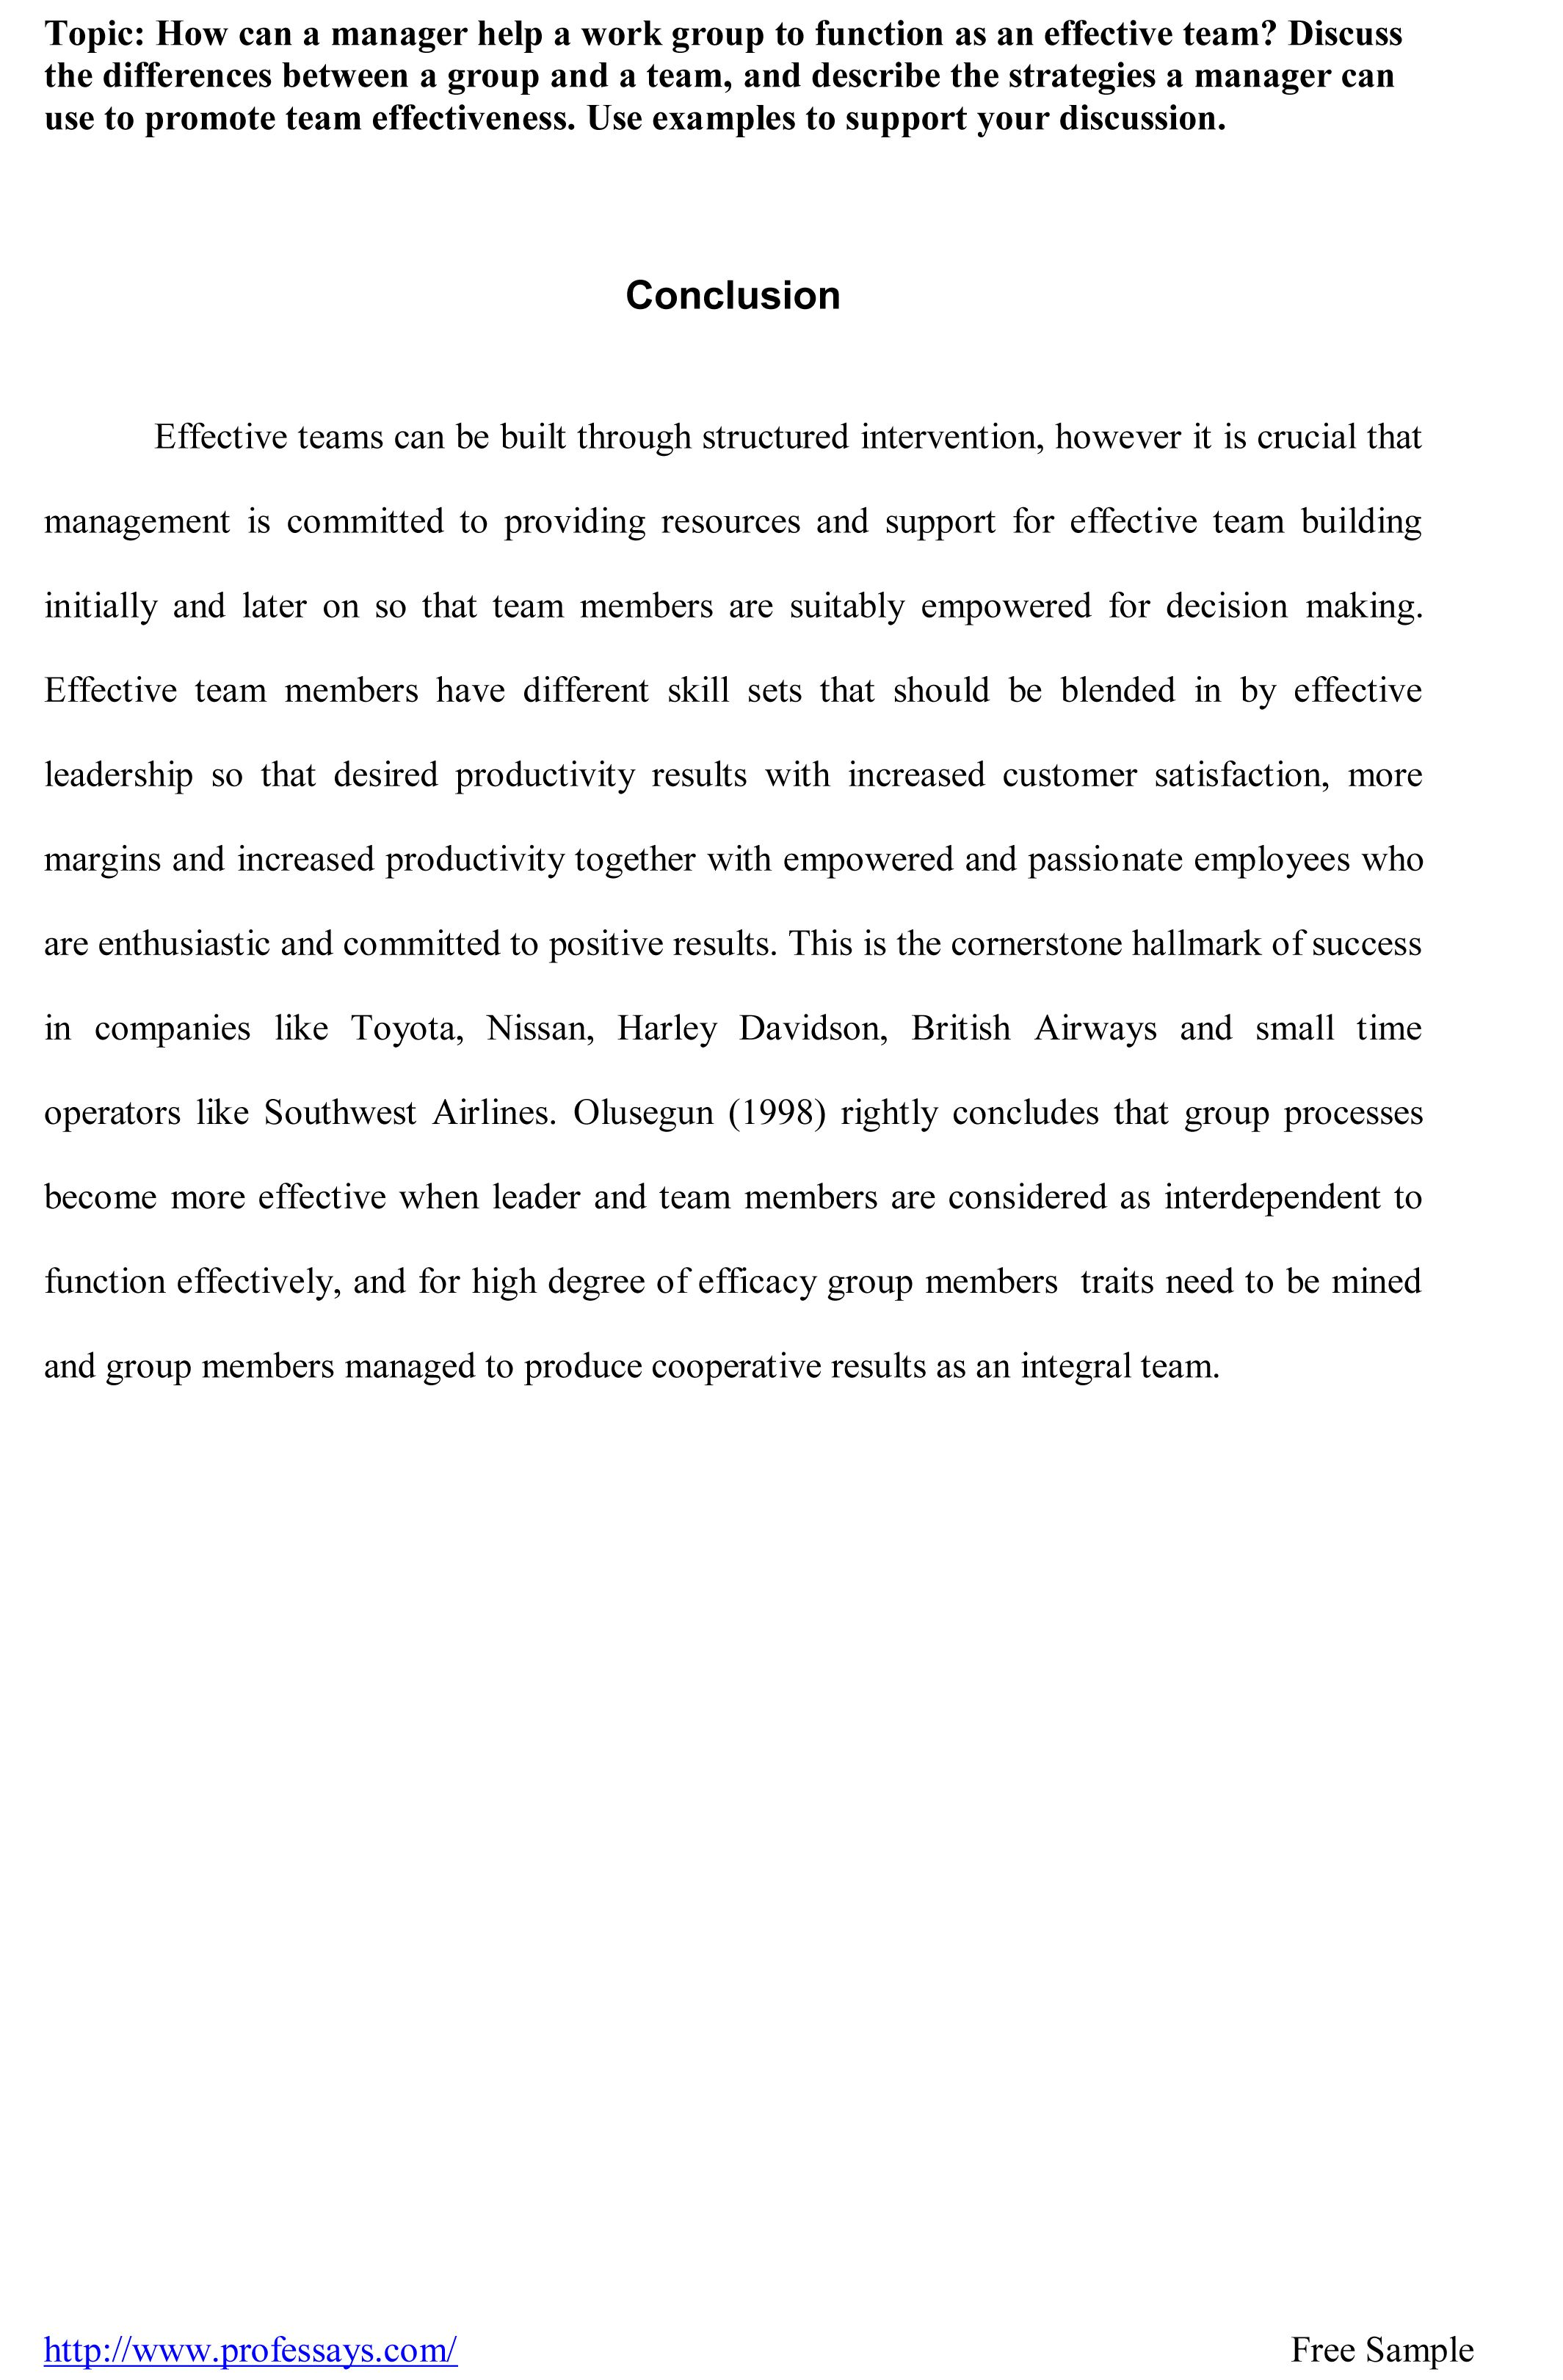 003 Example Of Research Paper Conclusion Astounding Conclusions In About Smoking Full